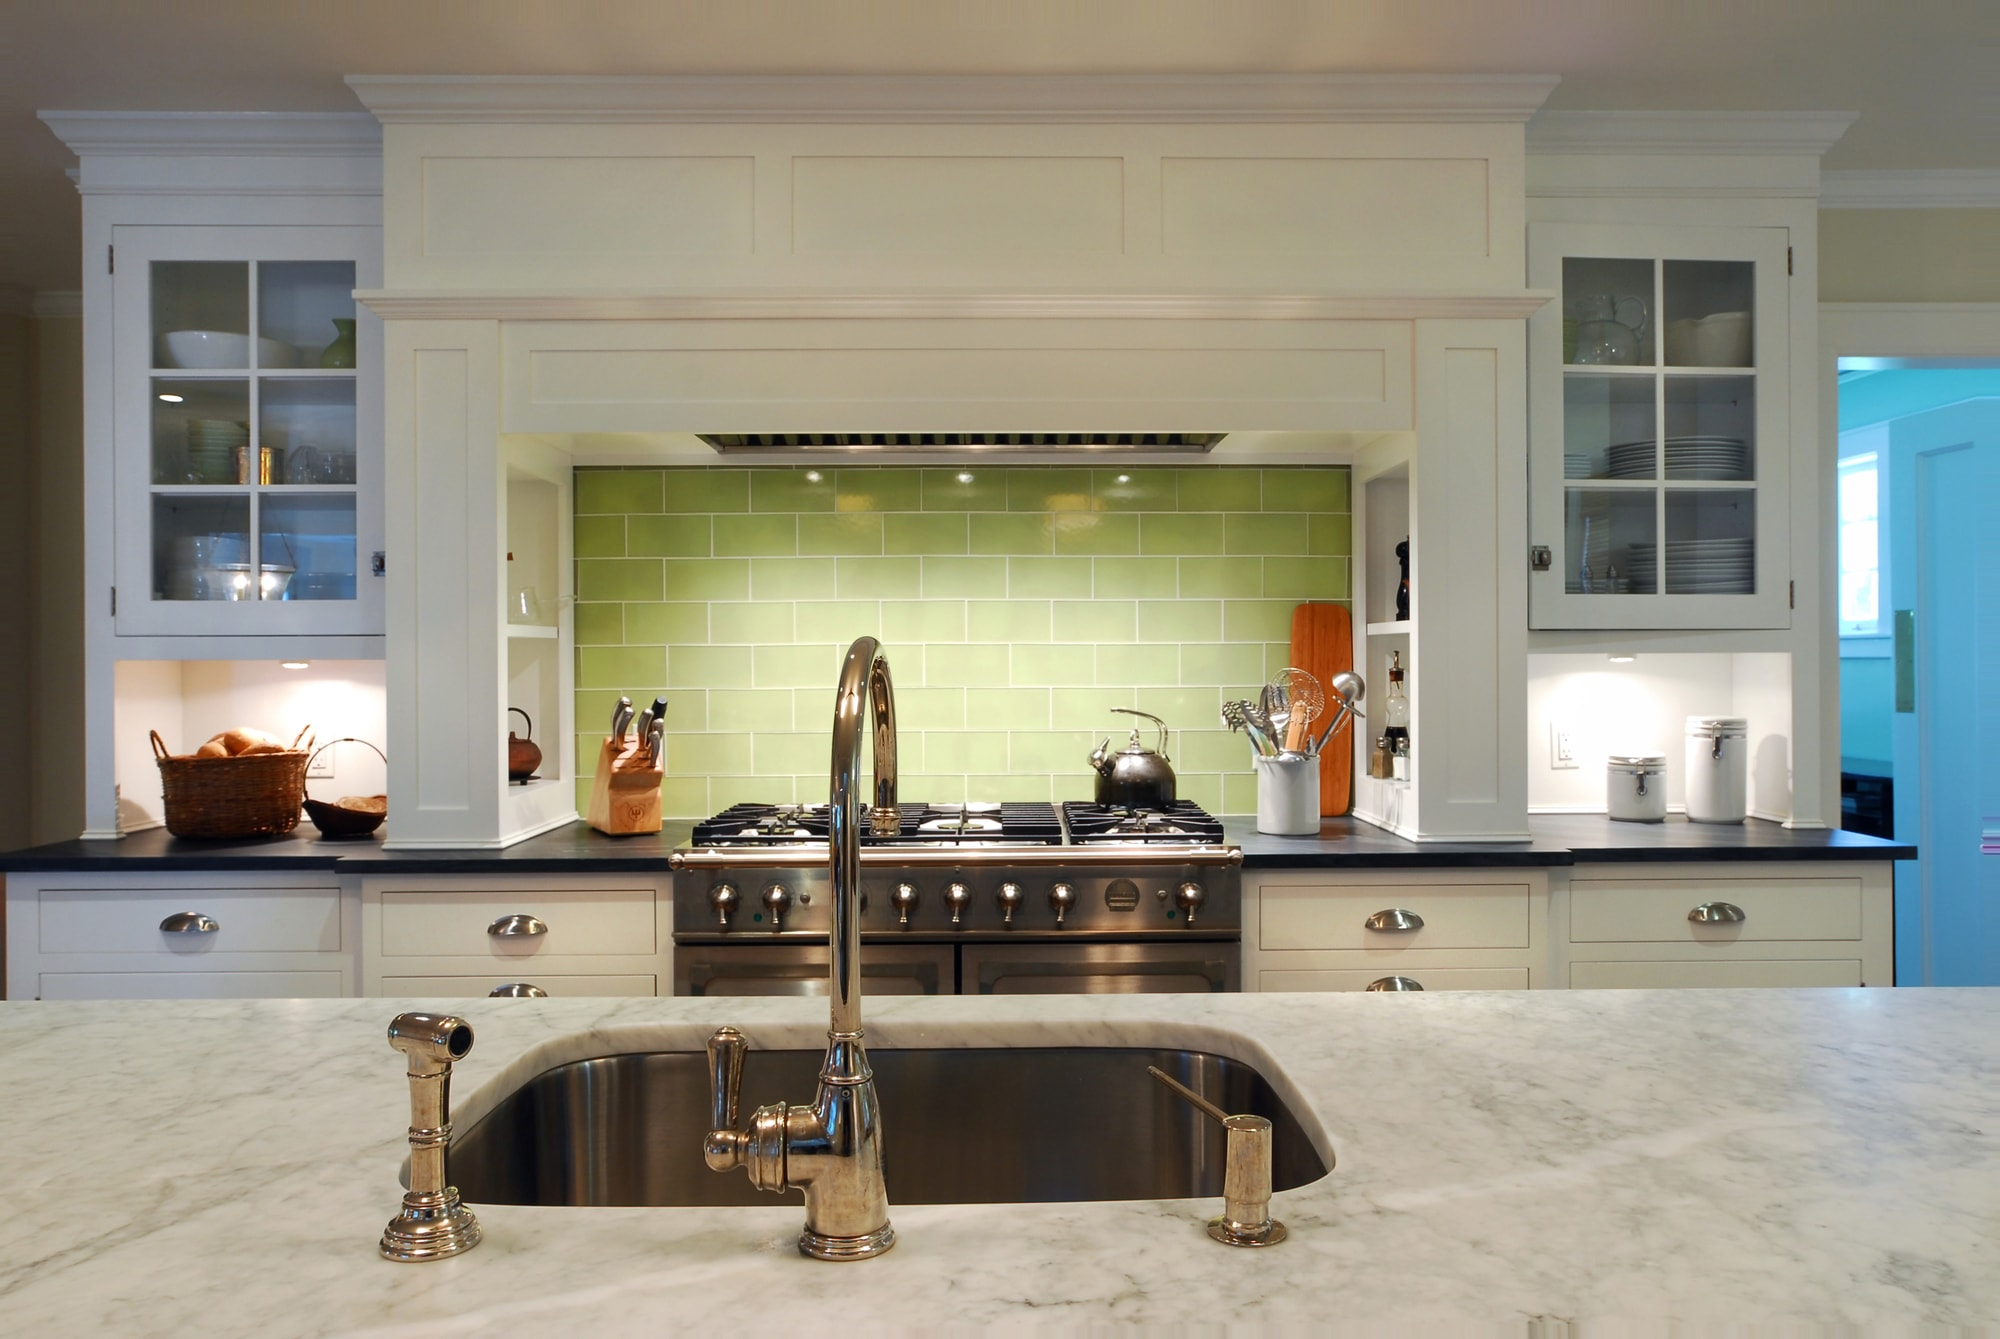 Transitional style kitchen with single hand faucet and marble countertop